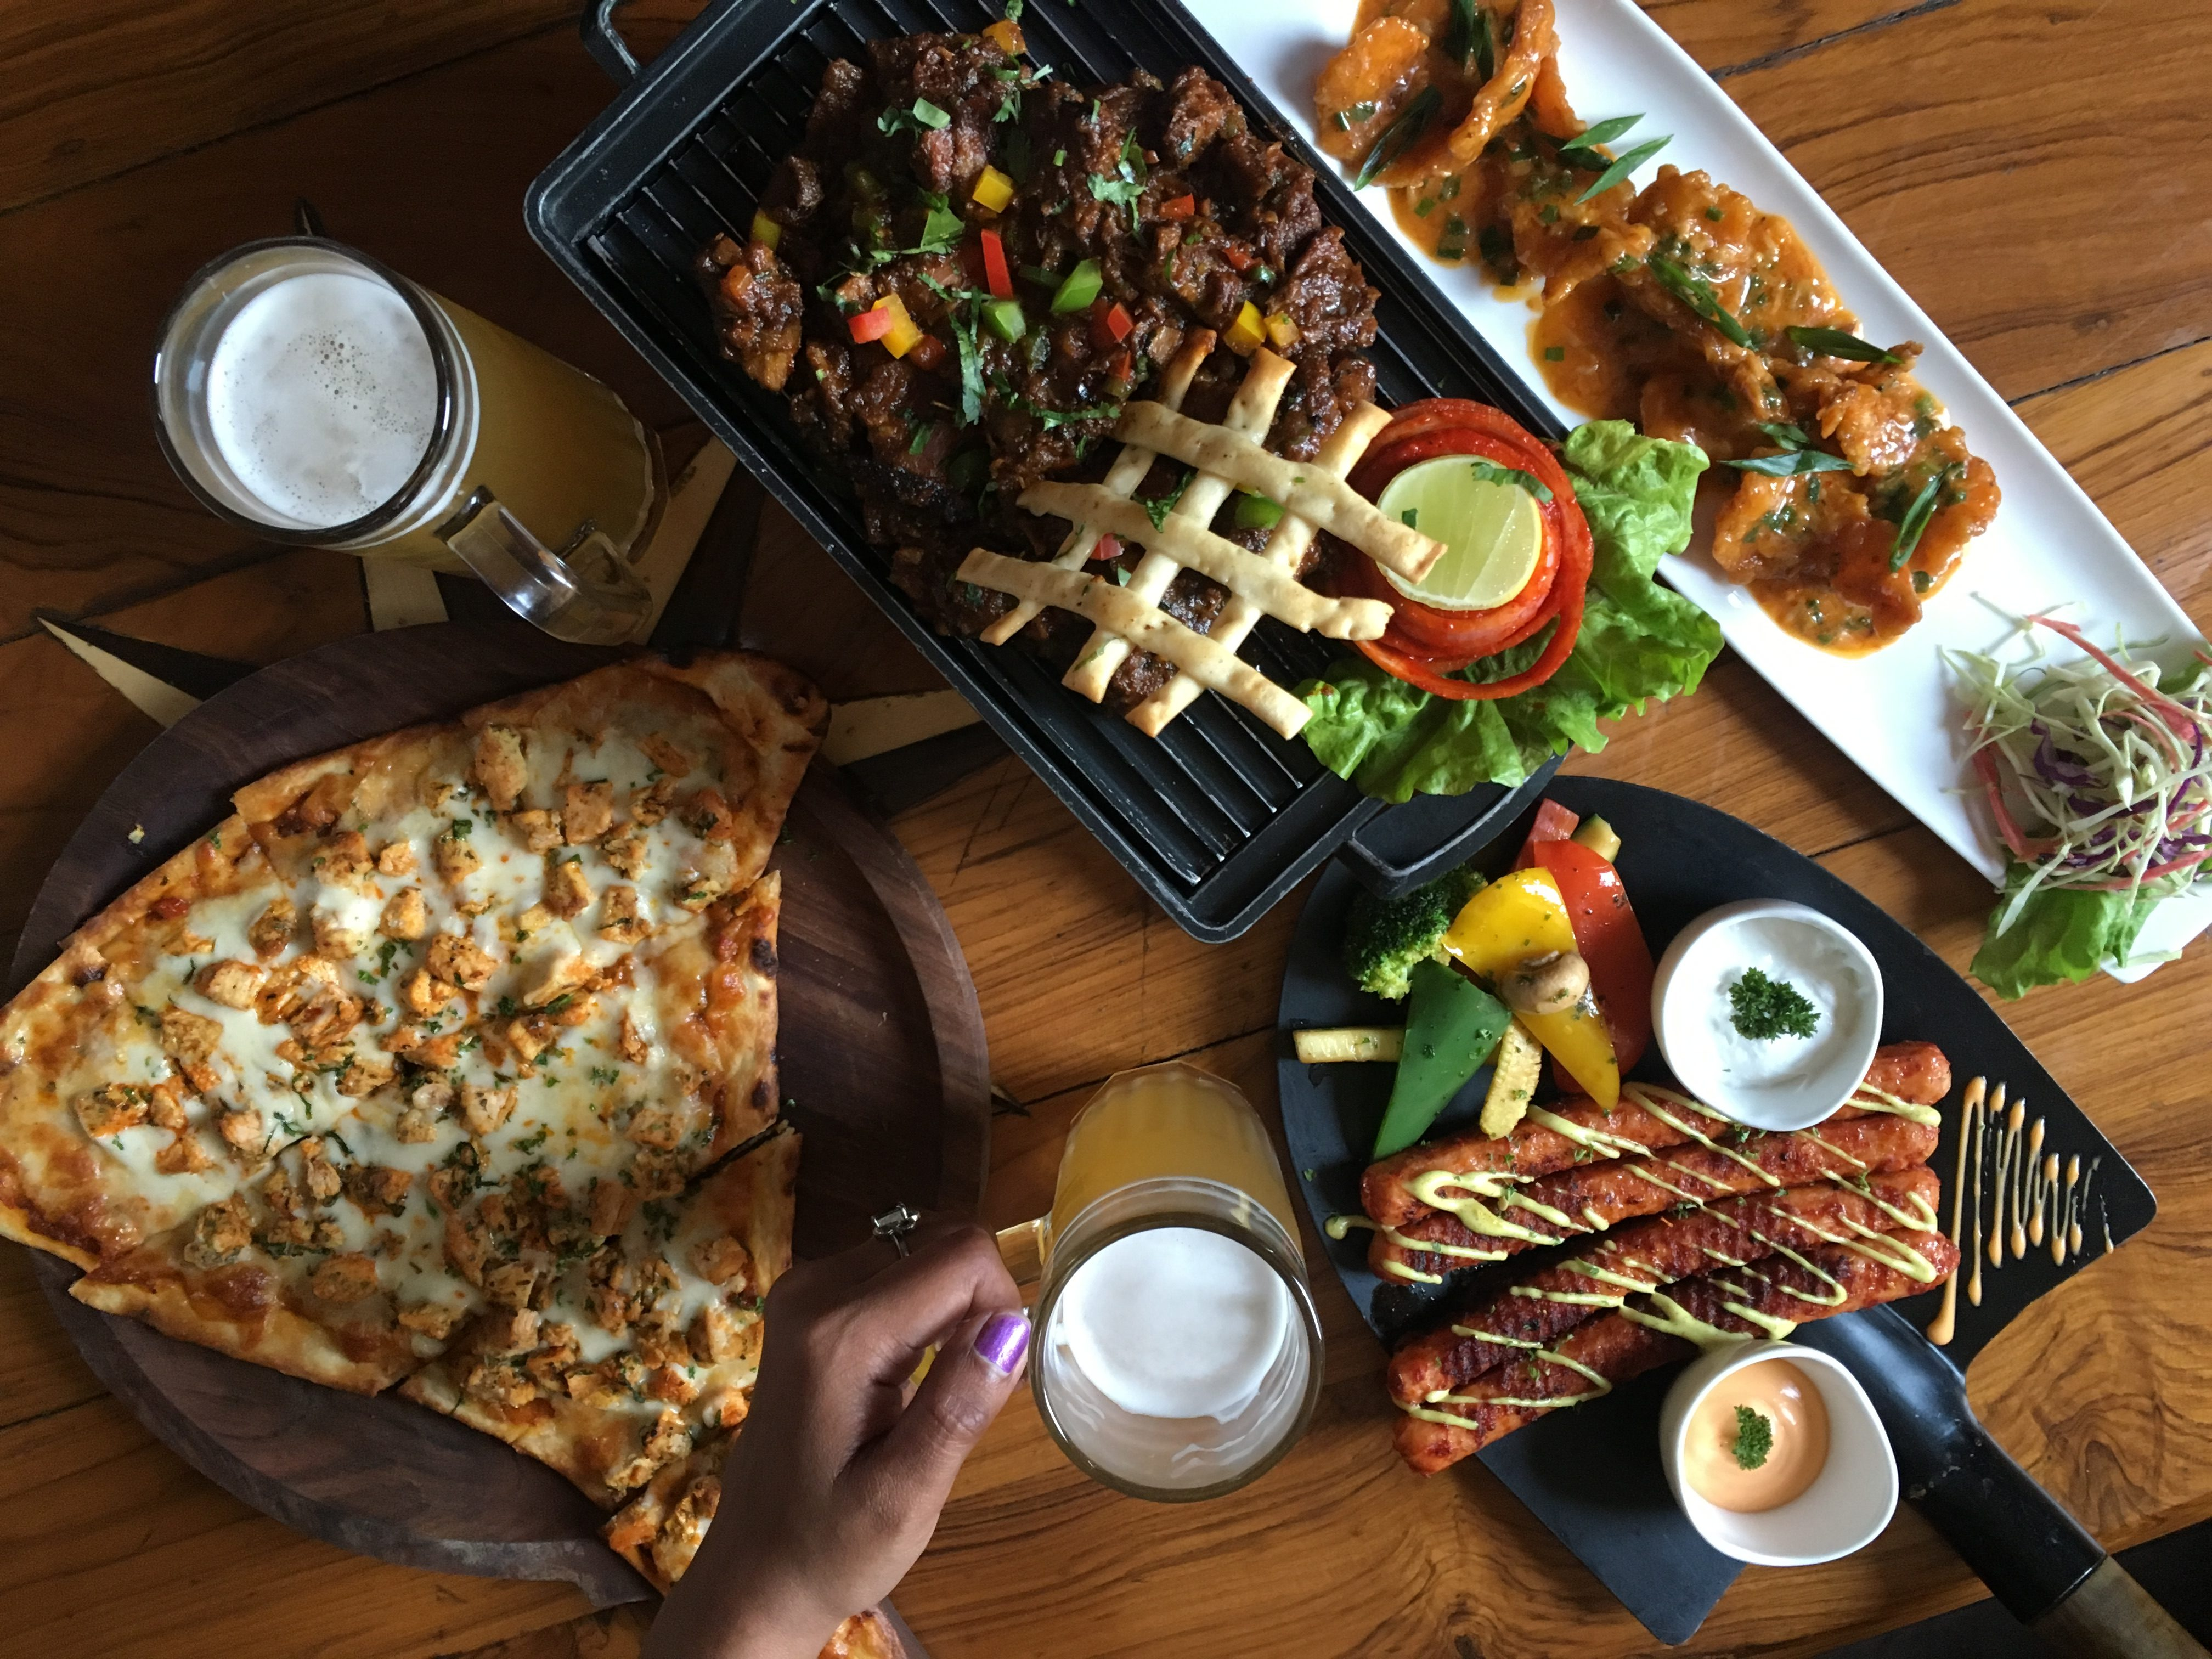 lunch combos at just INR 200